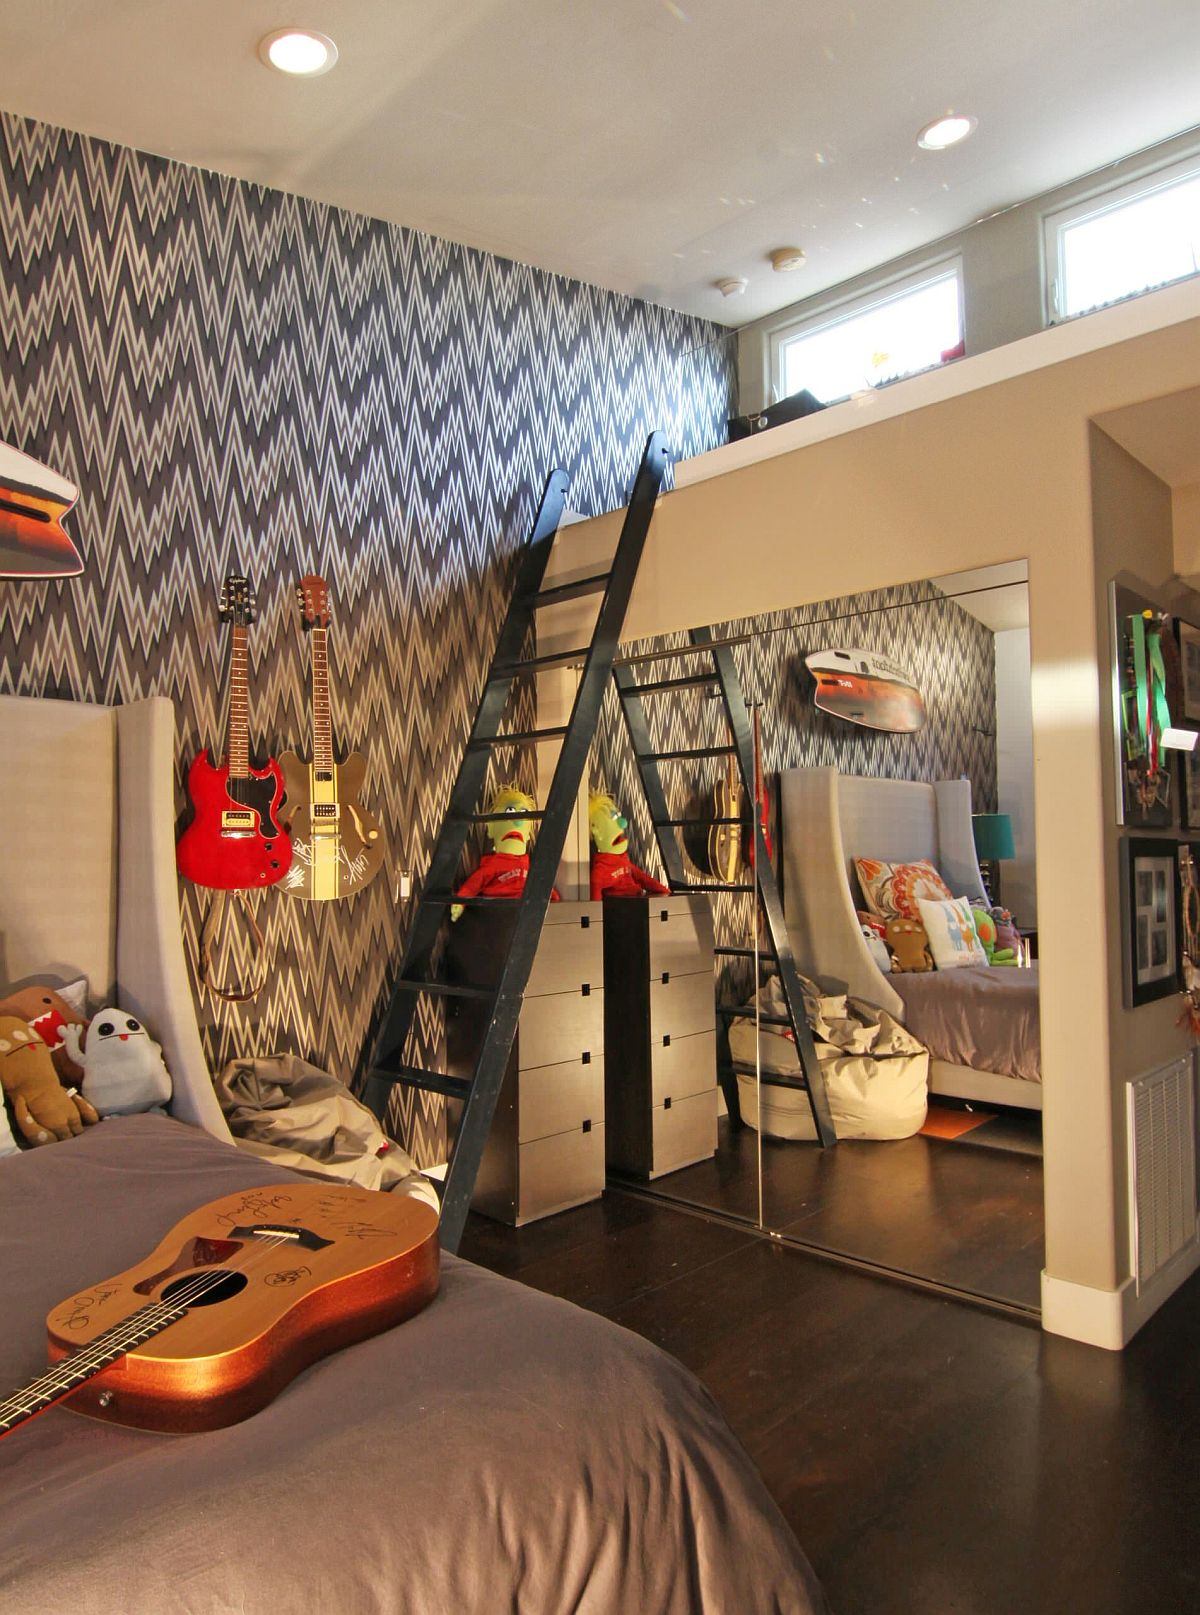 Loft bed can come in different shapes and forms in the kids' bedroom